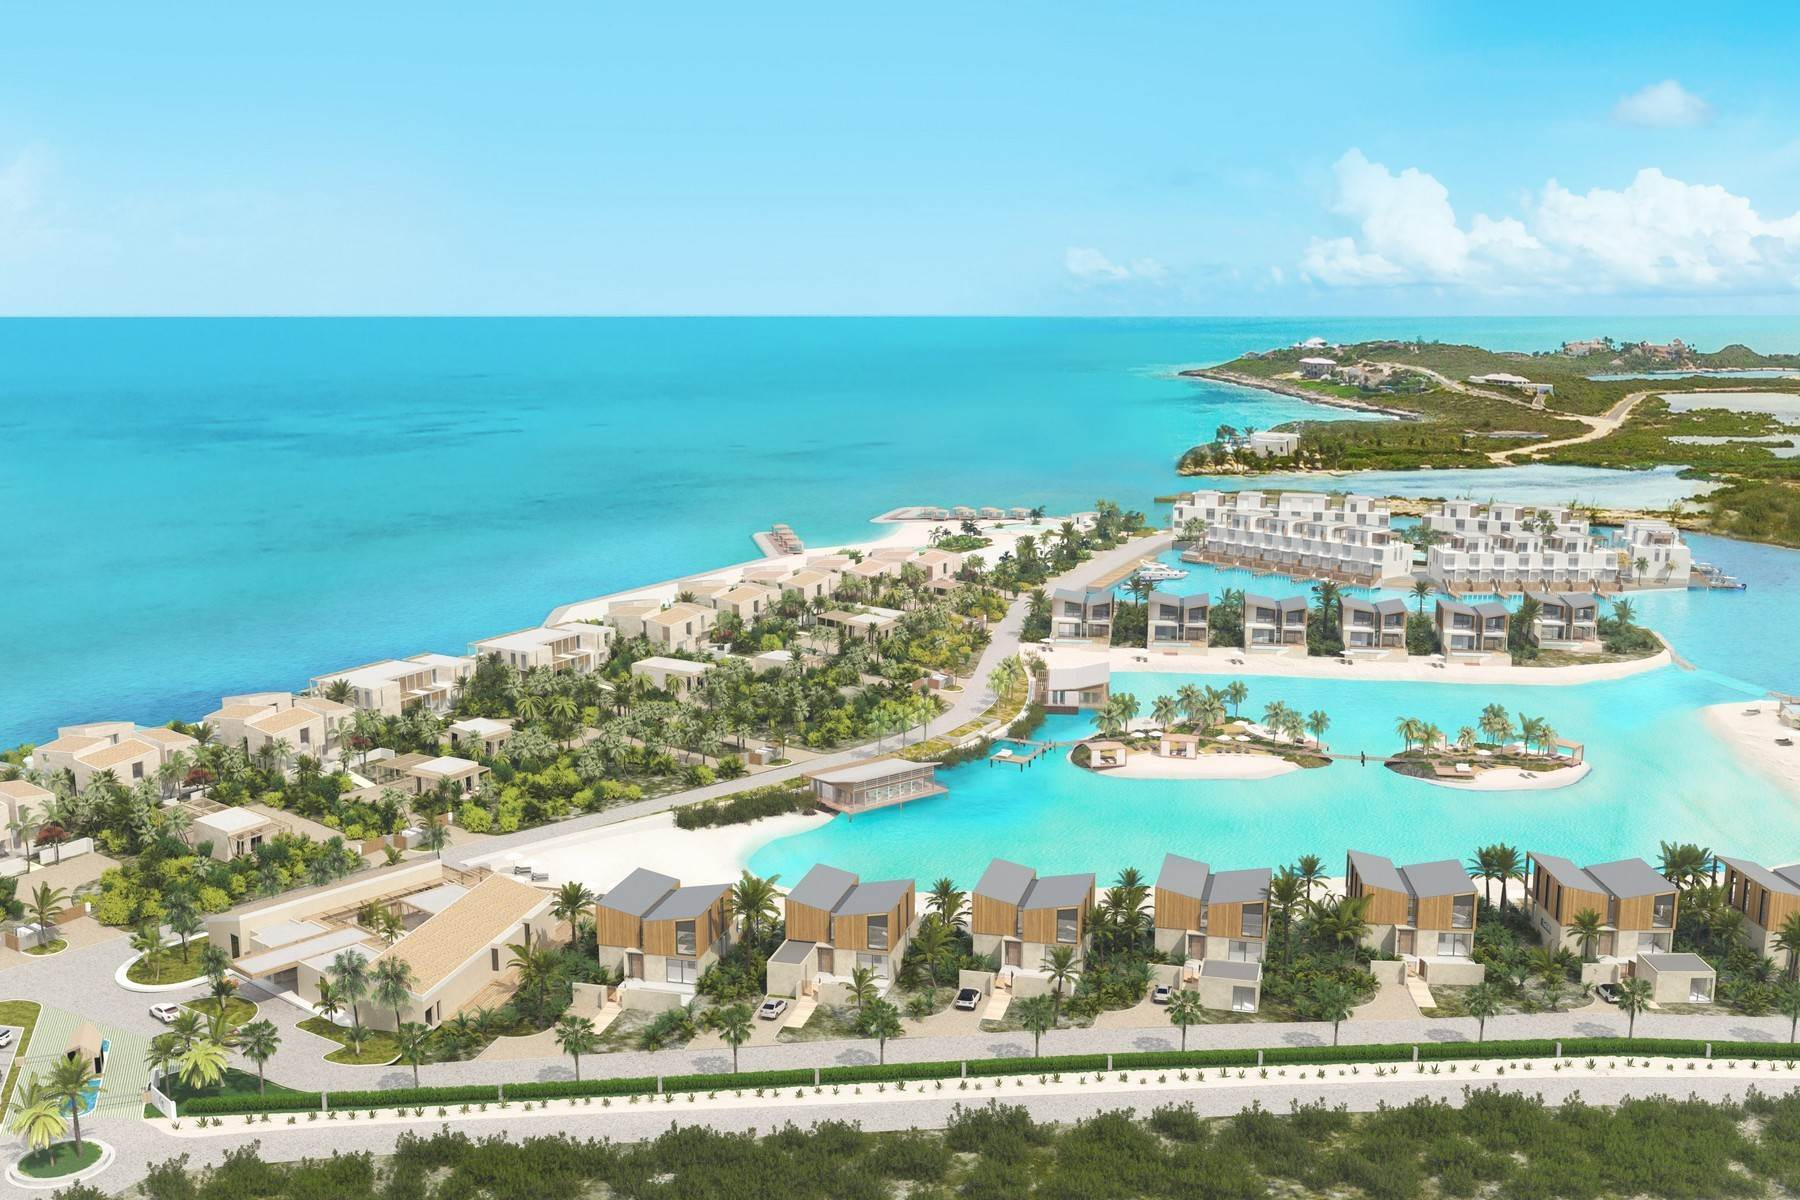 5. Single Family Homes for Sale at SOUTH BANK - THE OCEAN ESTATE II - REEF VILLA - VILLA 19 South Bank, Long Bay, Providenciales Turks And Caicos Islands